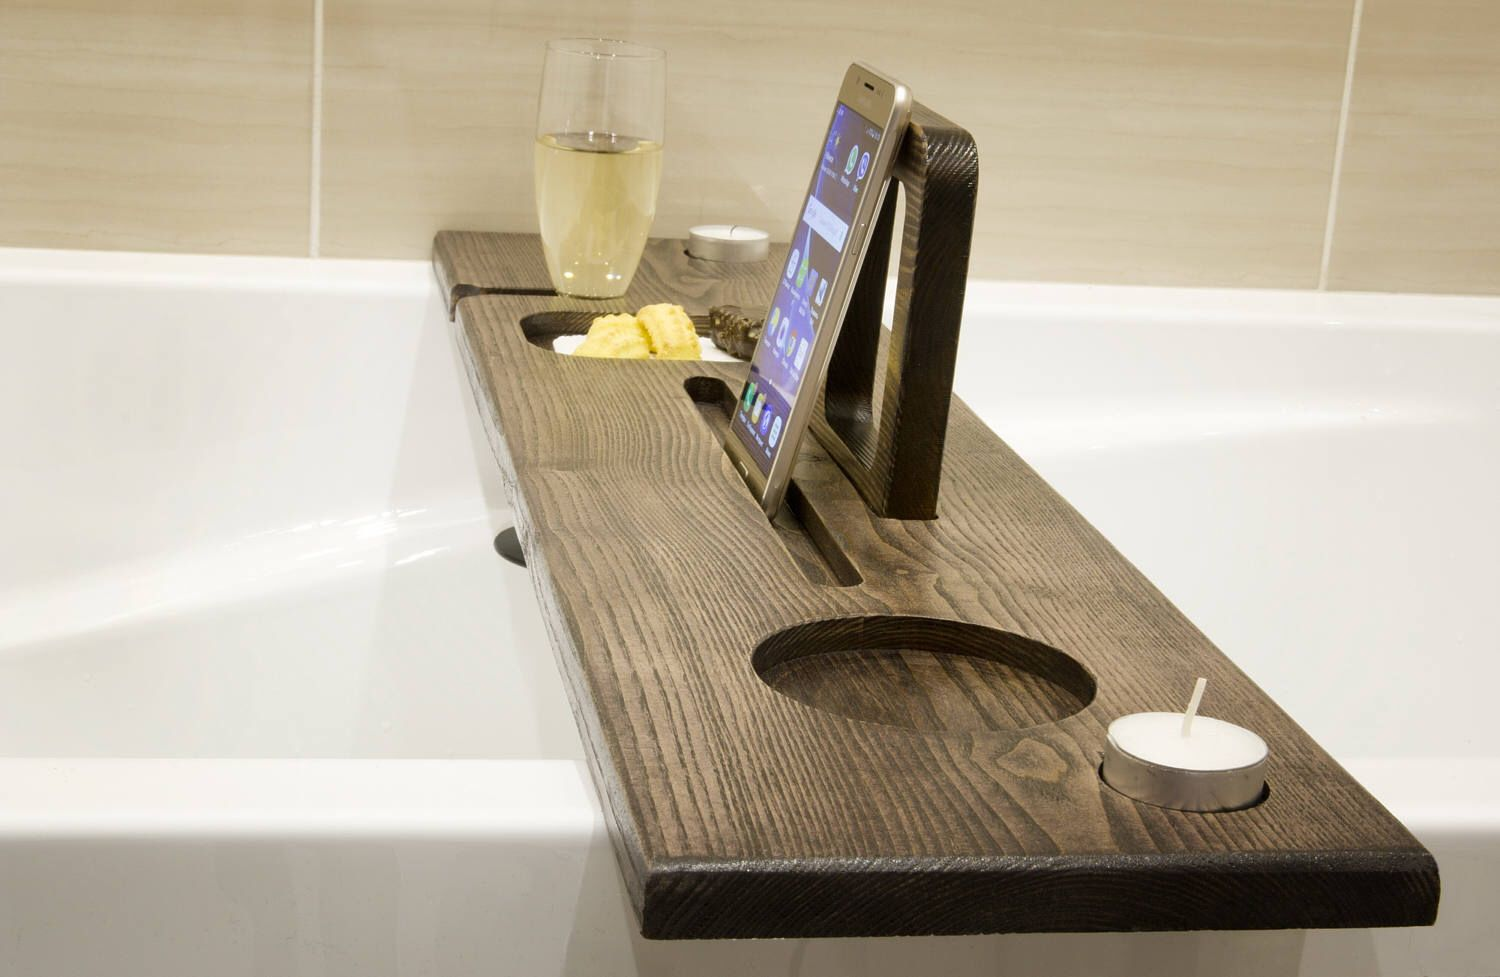 Pin By Megan Trounter On Ideas Wine Stand Bath Board